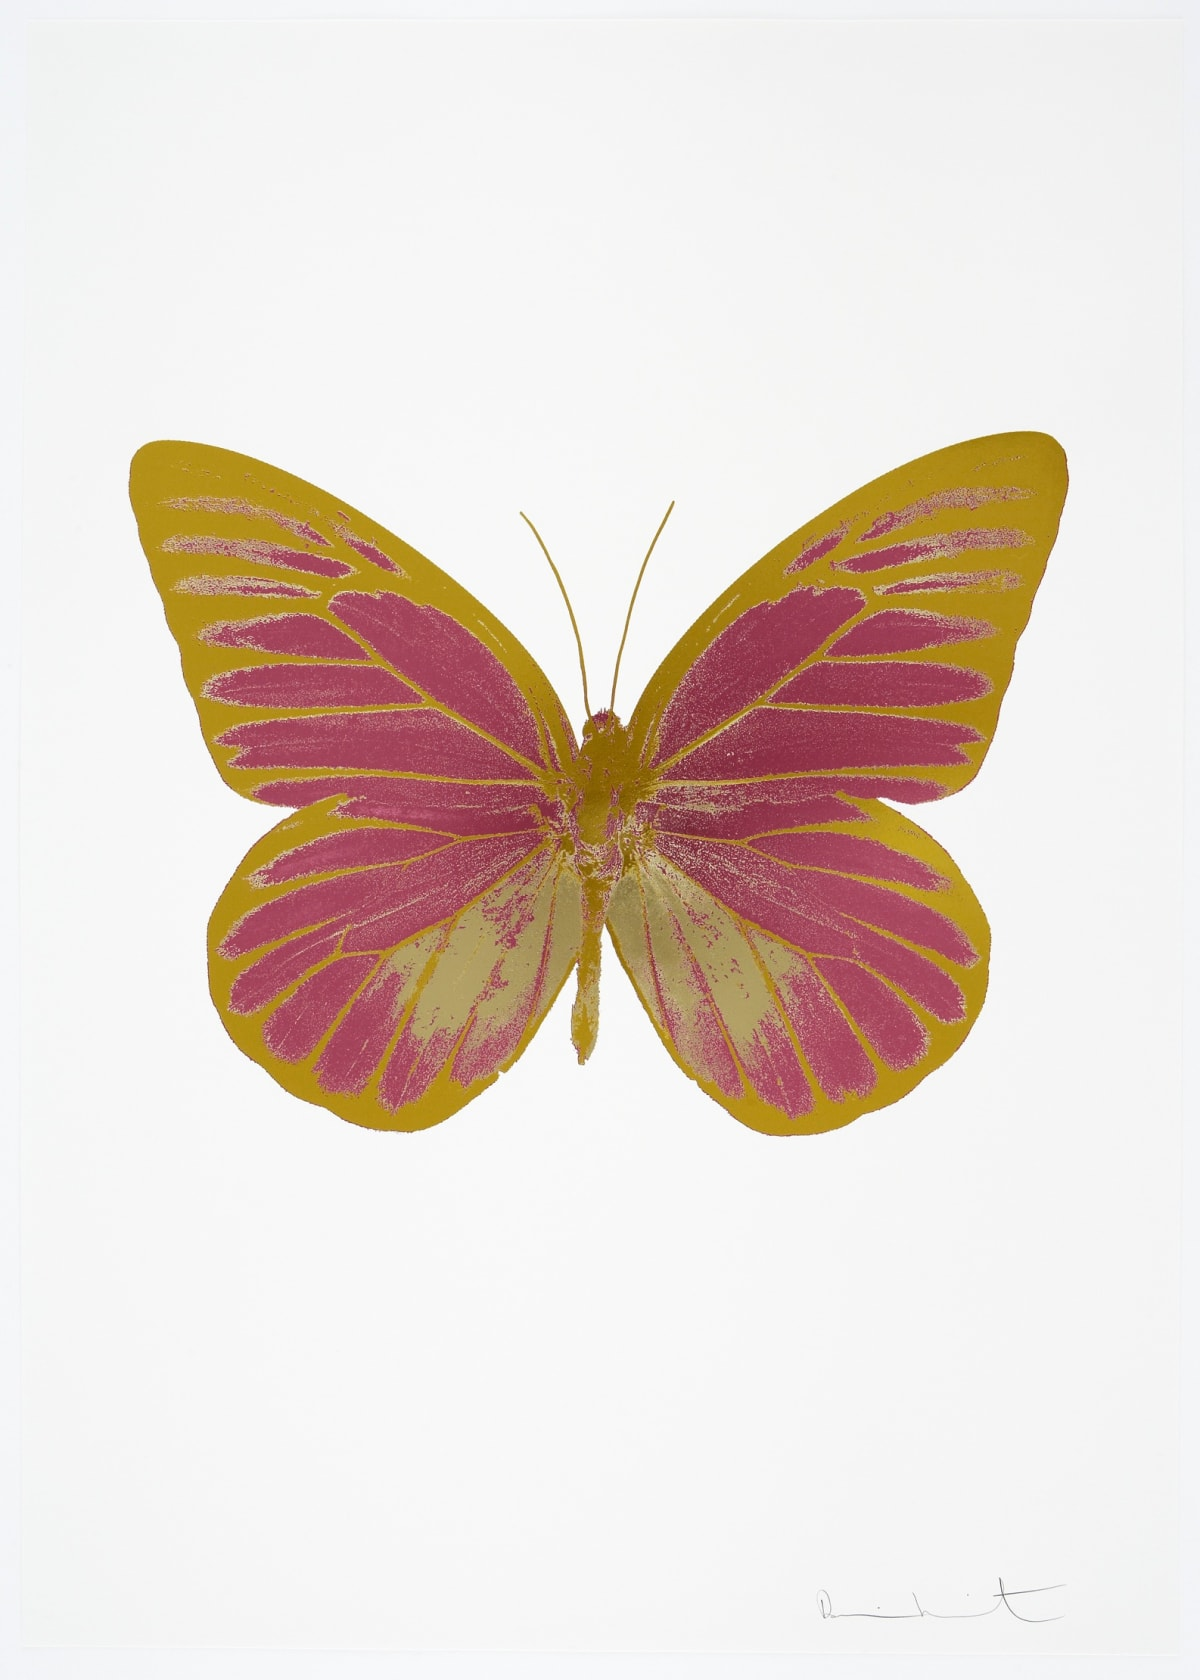 Damien Hirst The Souls I - Loganberry Pink/Cool Gold/Oriental Gold, 2010 3 colour foil block on 300gsm Arches 88 archival paper. Signed and numbered. Published by Paul Stolper and Other Criteria 72 x 51cm OC7812 / 659-75 Edition of 15